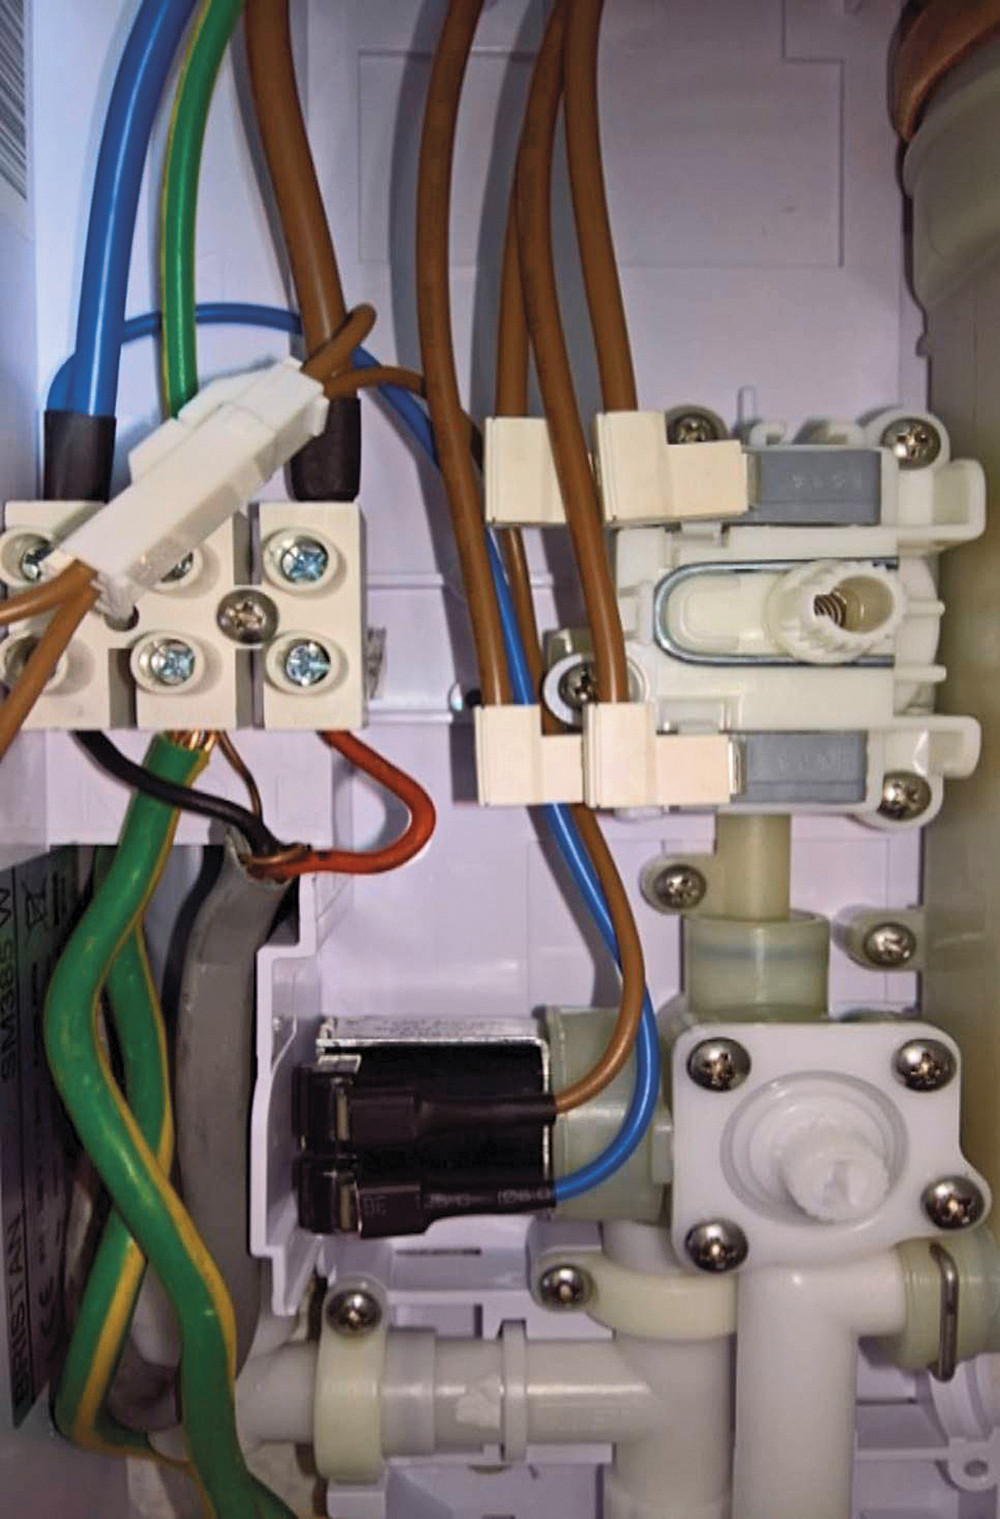 The householder was concerened about the wiring